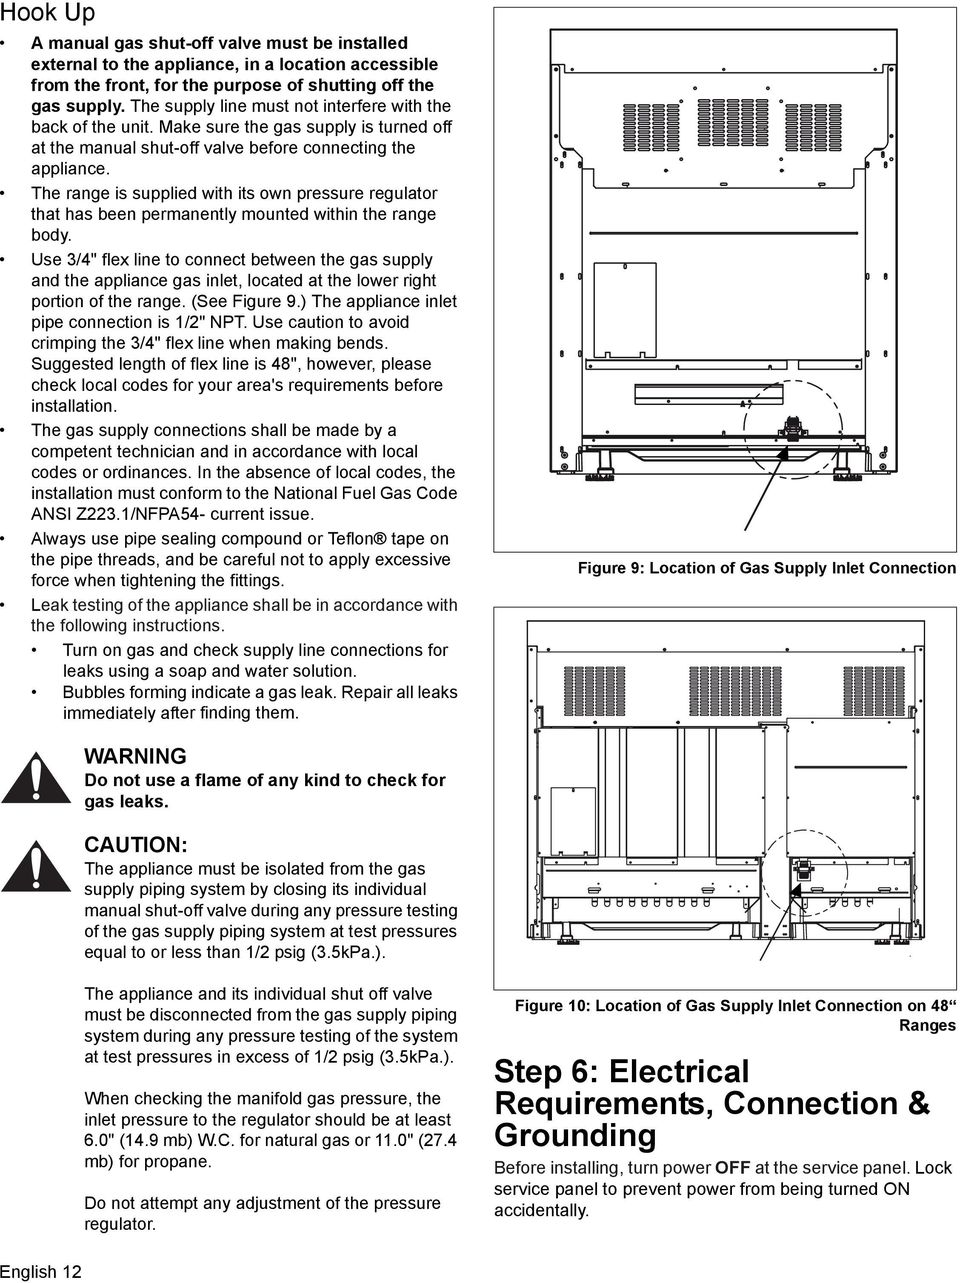 Installation Manual Manuel Dinstallation De Instalacin For Propane Electric Refrigerator Wiring Schematic The Range Is Supplied With Its Own Pressure Regulator That Has Been Permanently Mounted Within 15 Model Type Chart B Electrical Supply Circuit